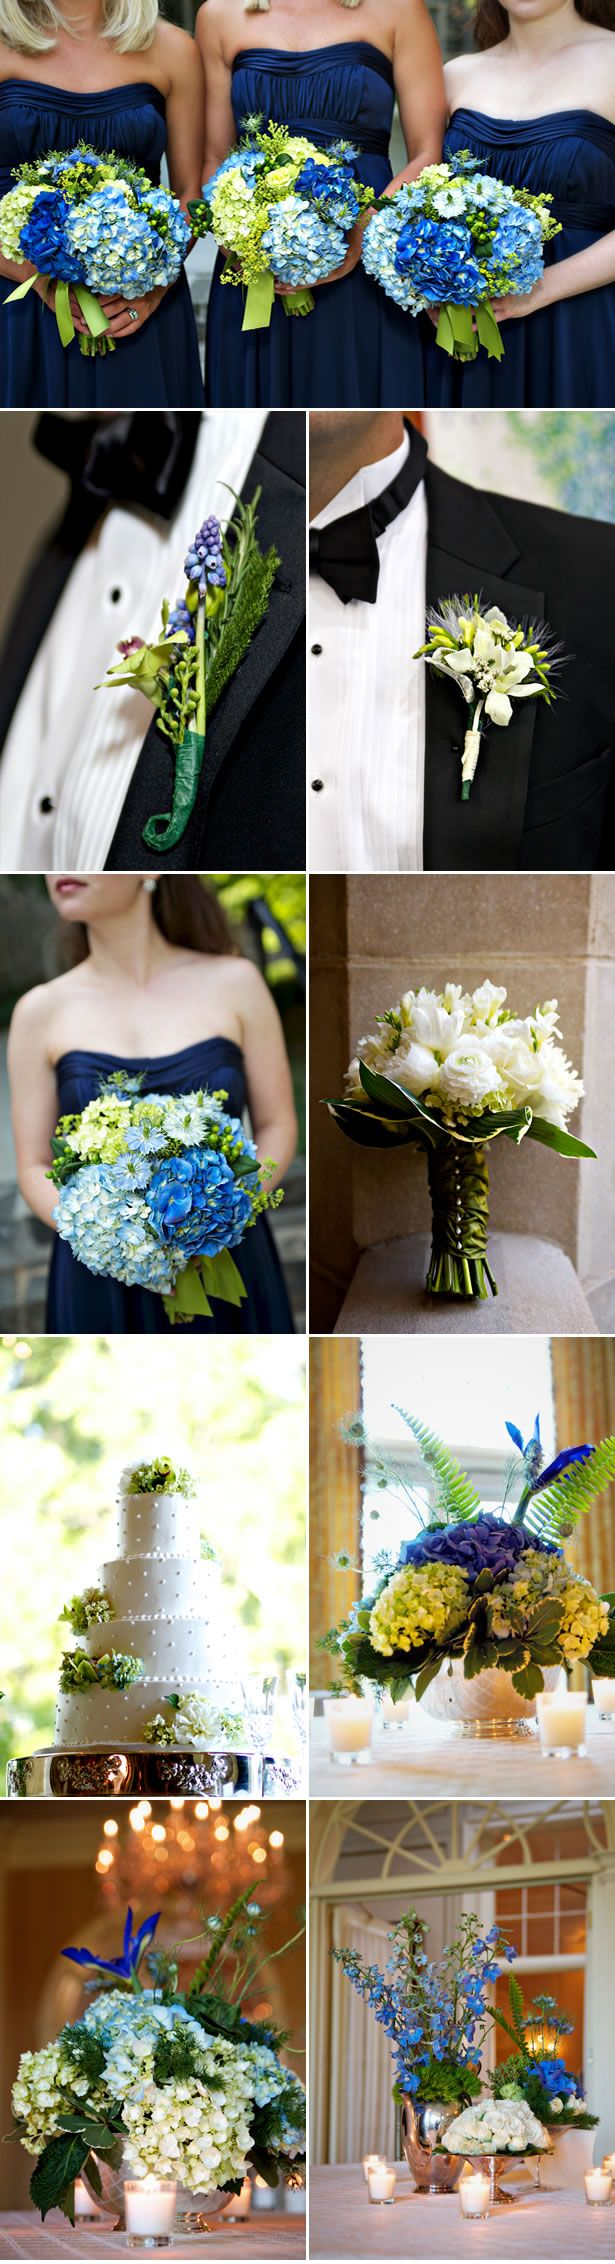 best weddingfor future images on pinterest weddings flower